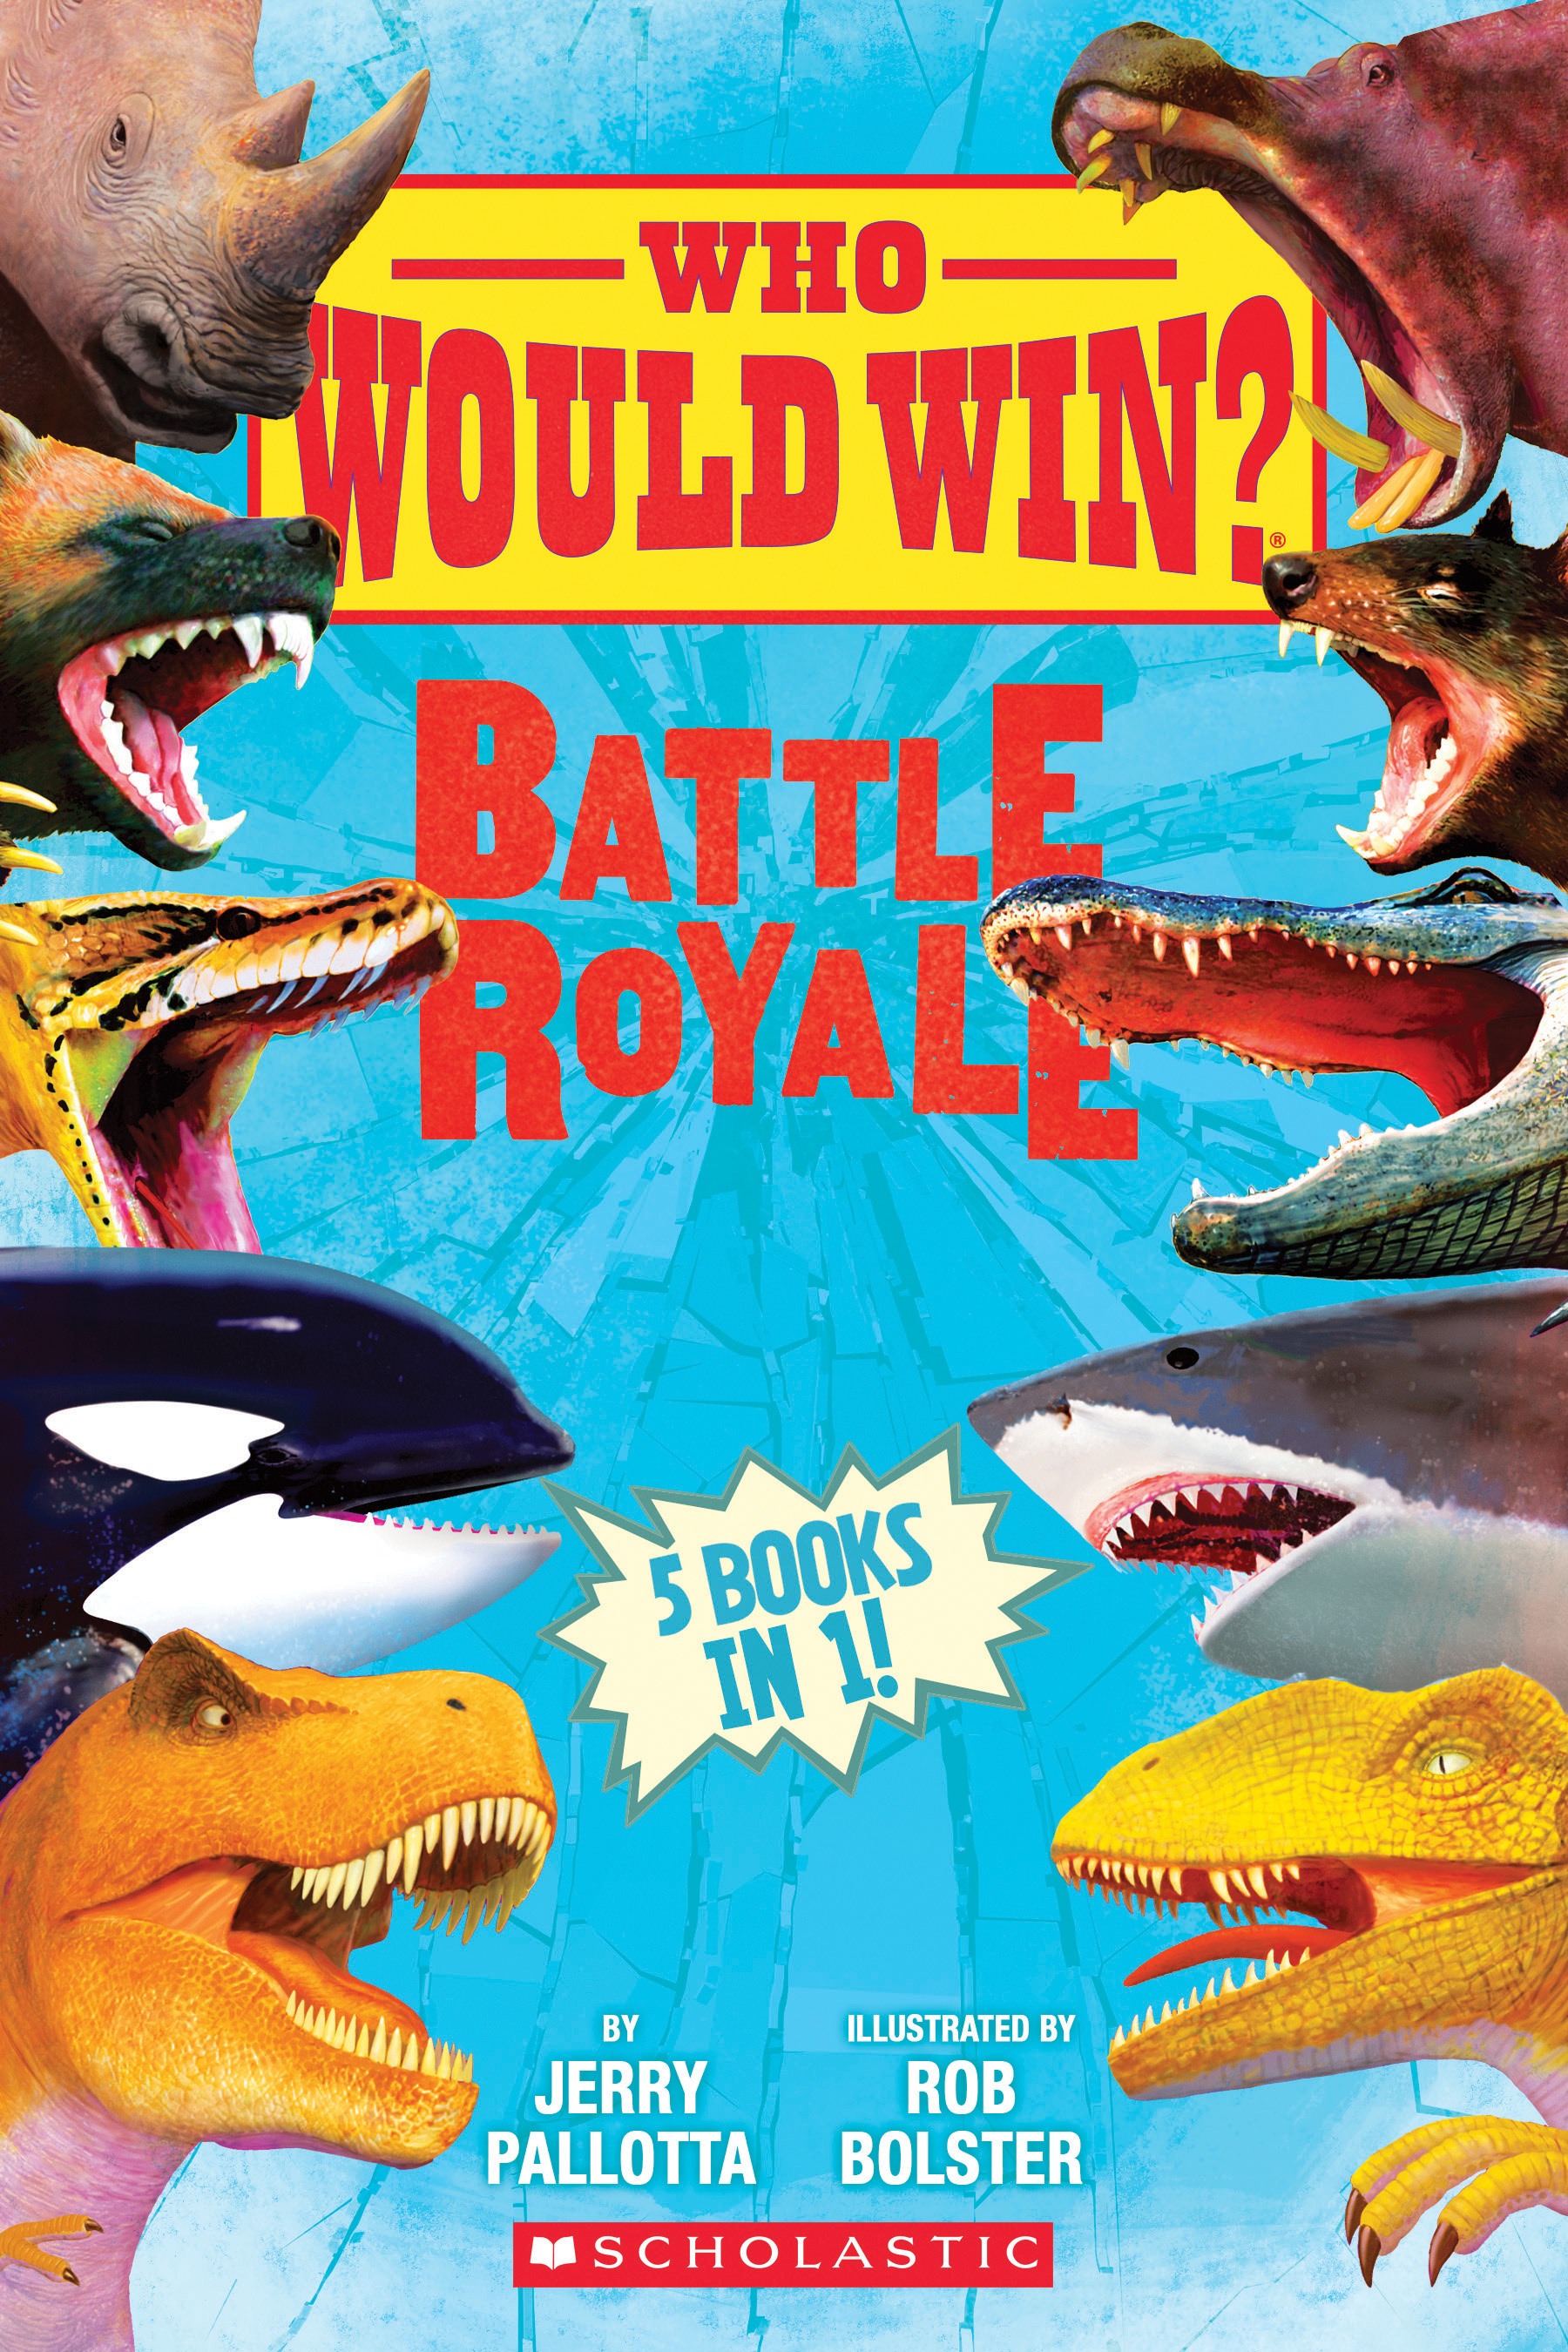 Who Would Win?Battle Royale